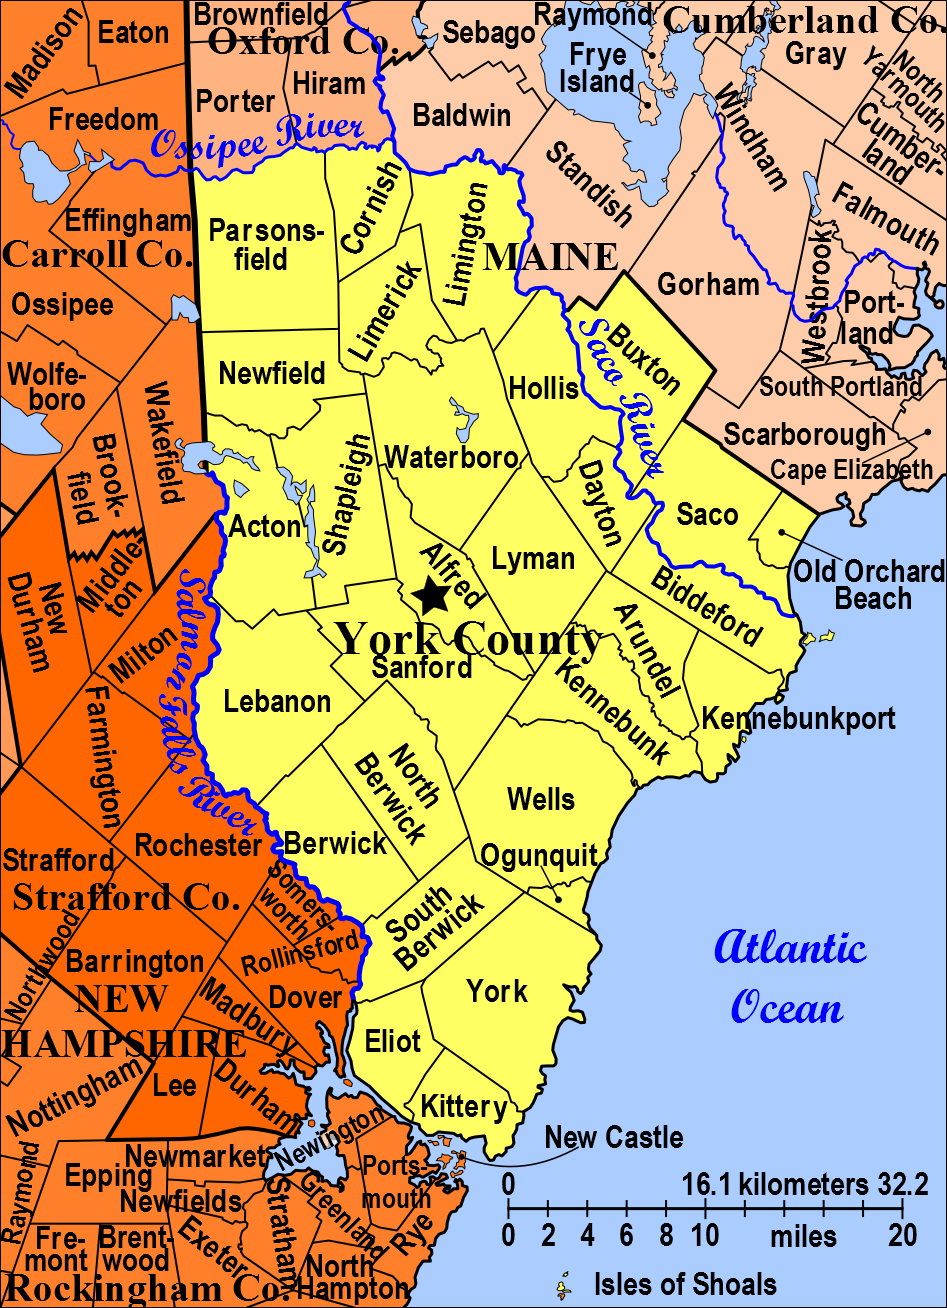 Town of York Maine   Modern town borders in York County ... City Of York County Maine Map on blank map of maine, york maine area map, driving map of maine, portland map of maine, brunswick map of maine, york county maine map 1872, york me map, york county city map, full map of maine, camden map of maine, map of counties of maine, us state map of maine,